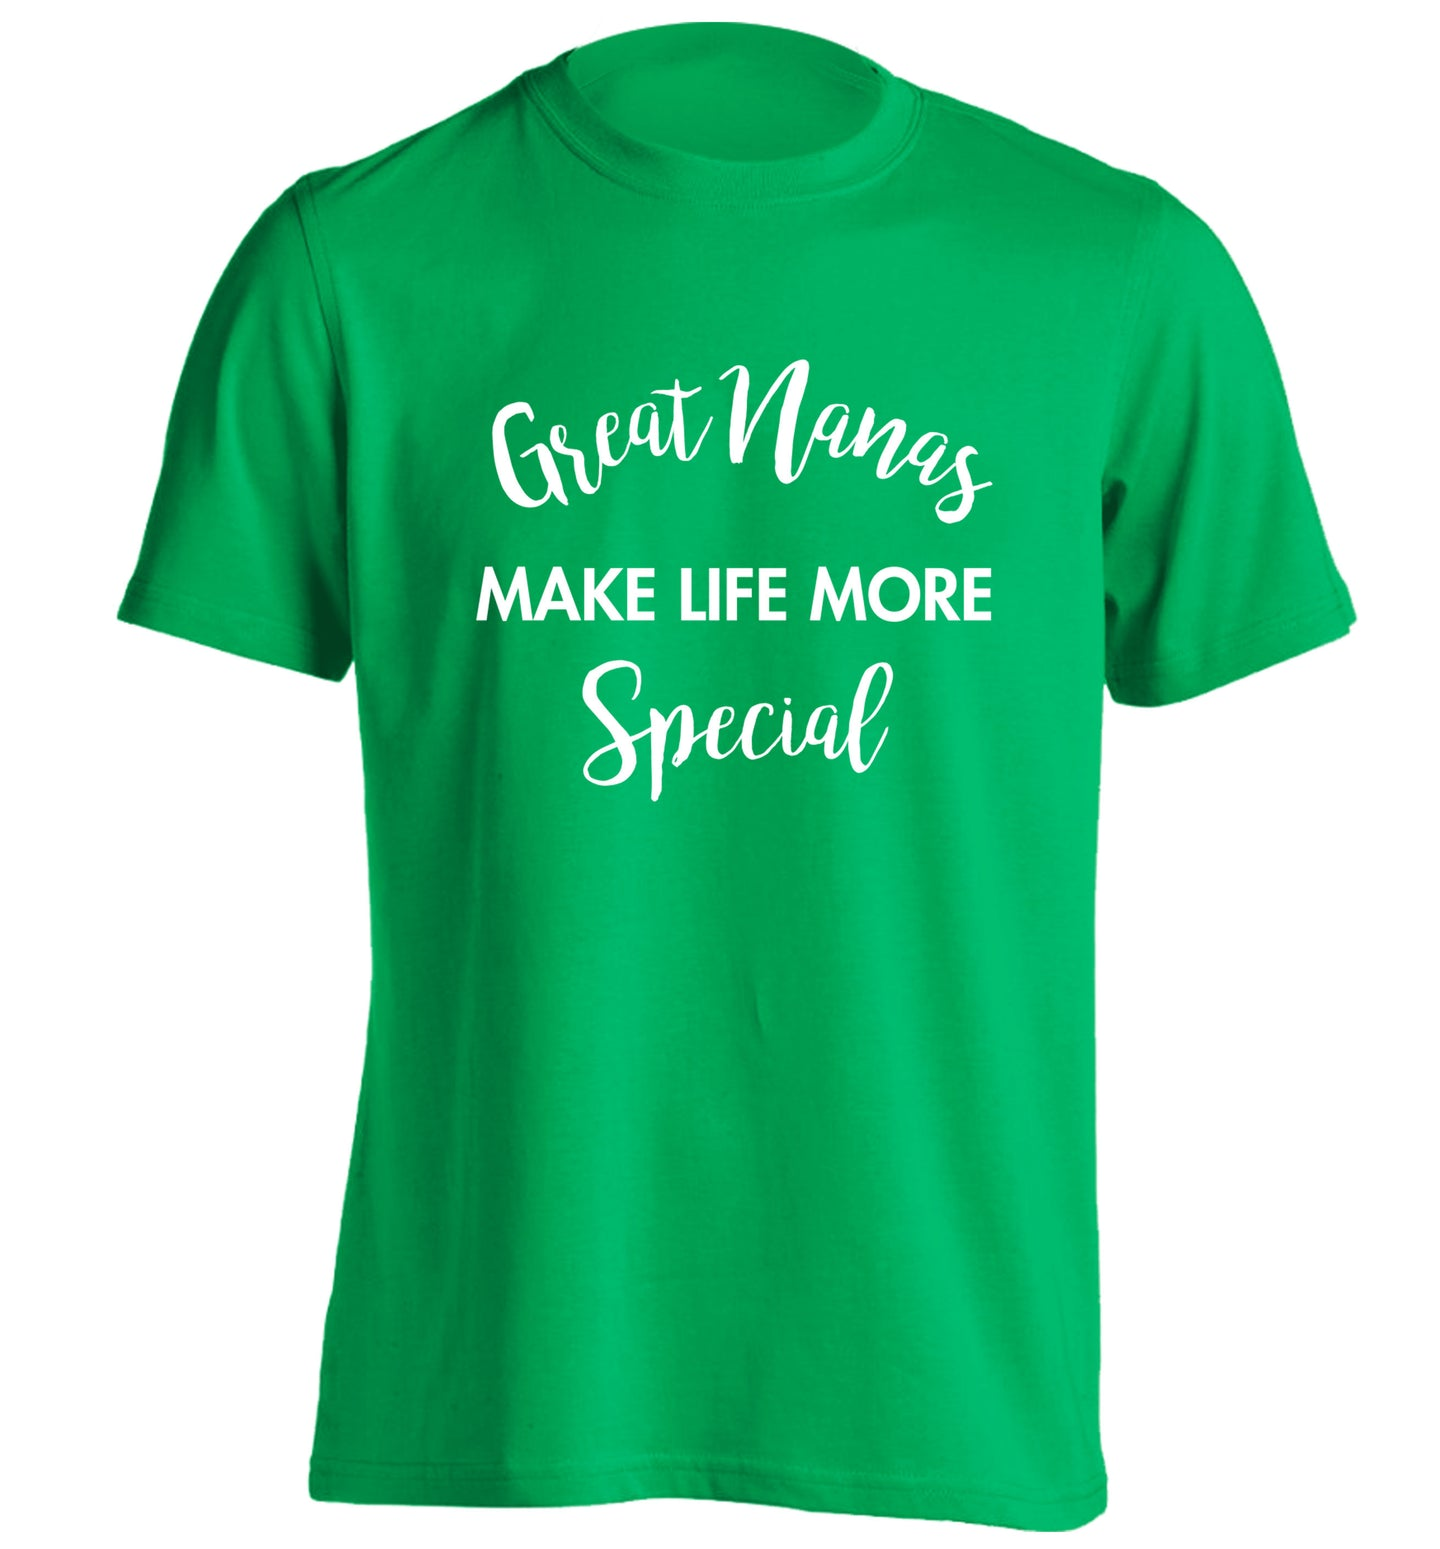 Great nanas make life more special adults unisex green Tshirt 2XL